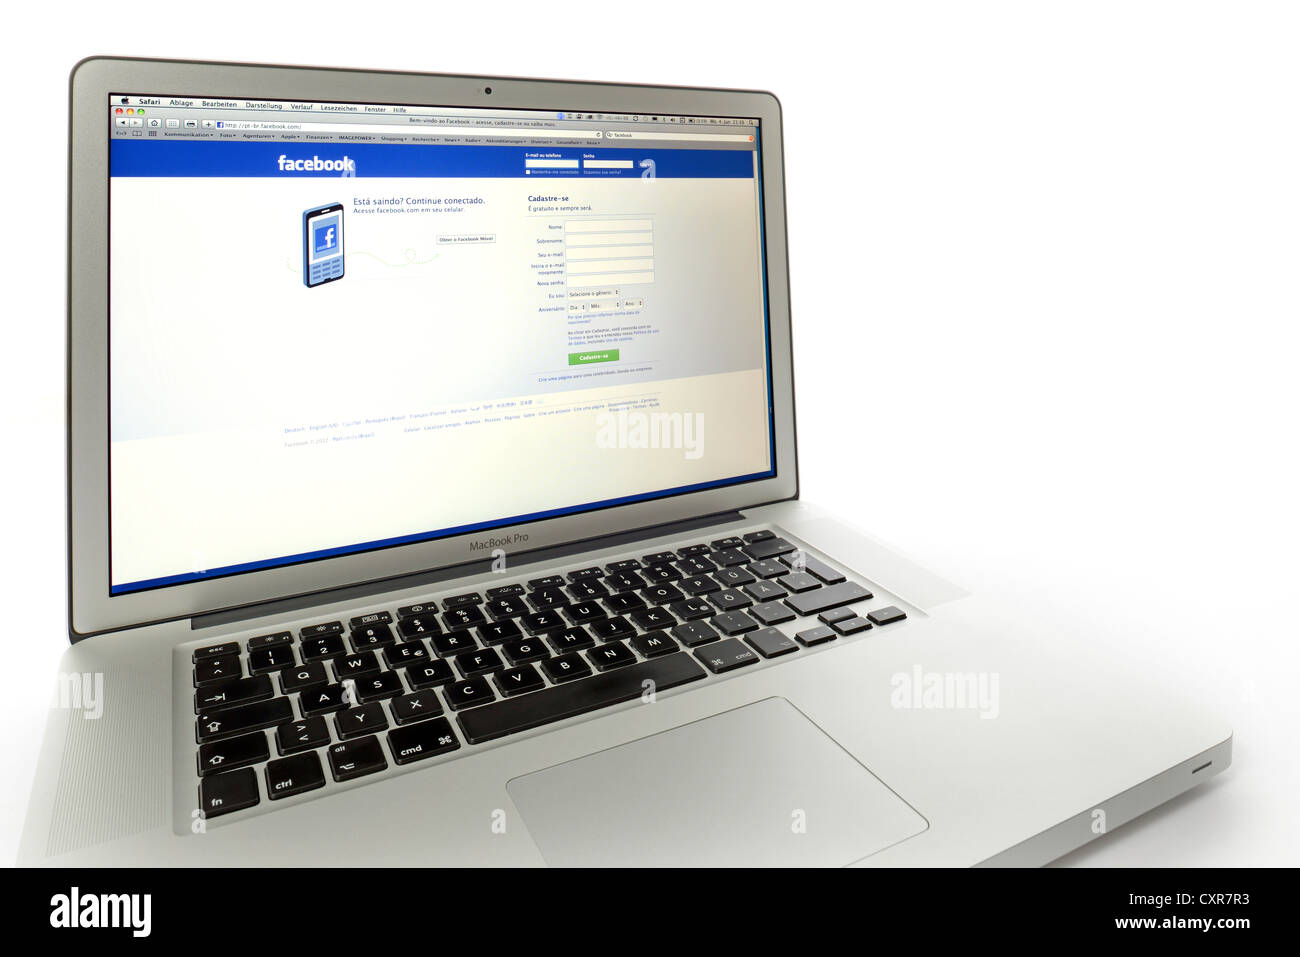 Portuguese language version of Facebook, social networking website displayed on the screen of an Apple MacBook Pro Stock Photo